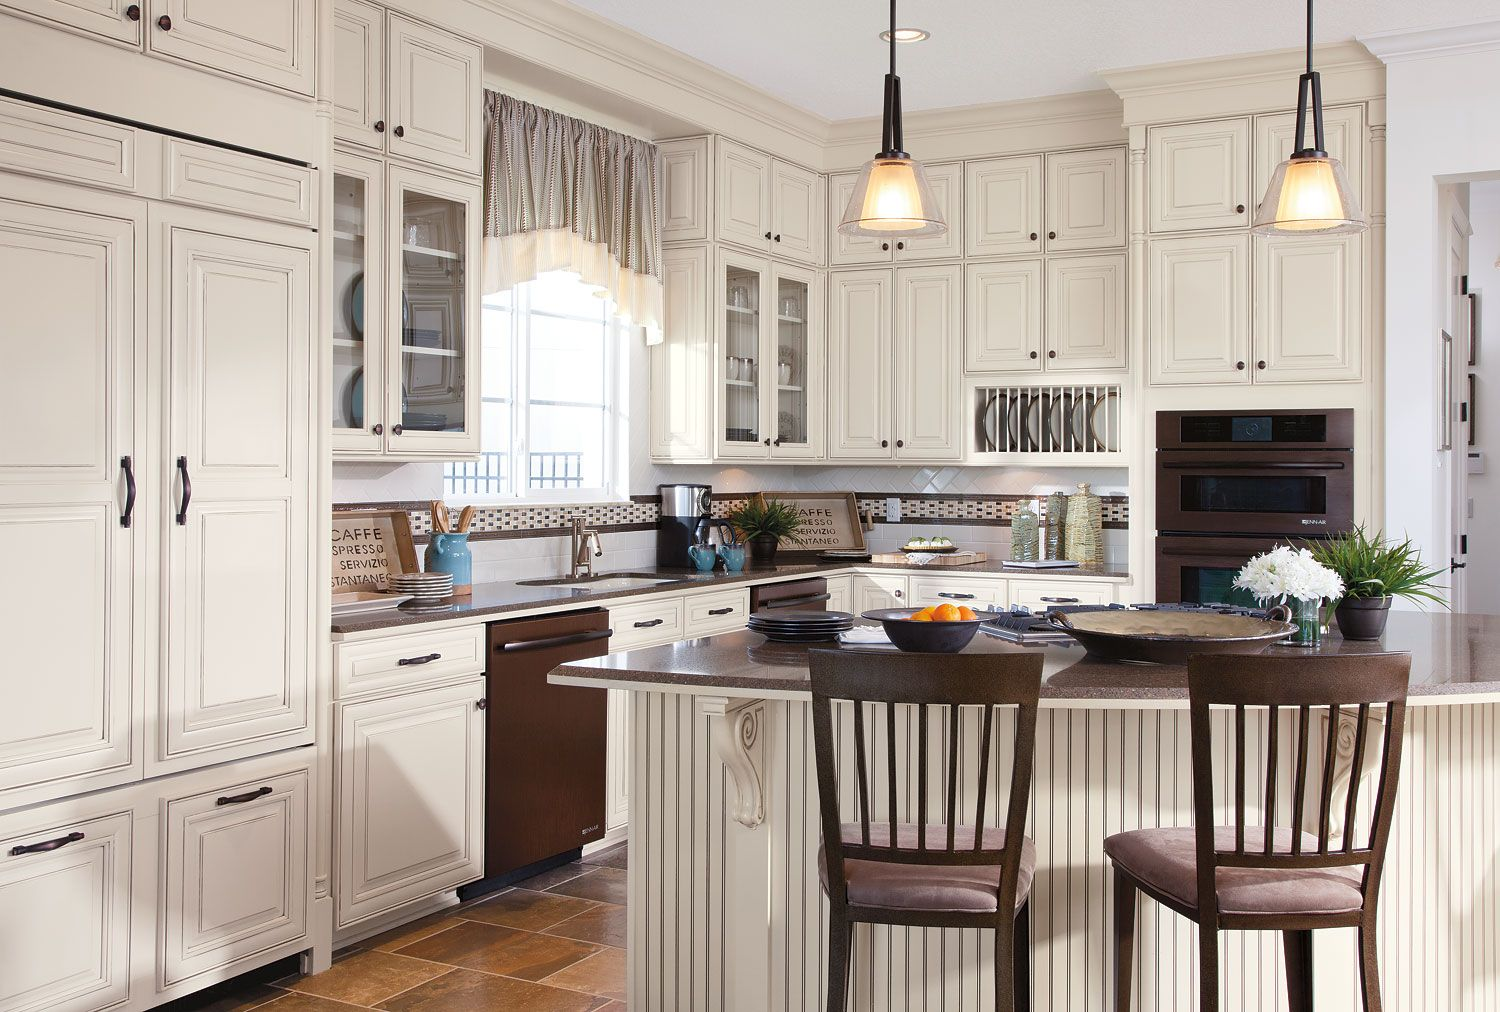 Beautiful white kitchen with timberlake cabinets and decorative